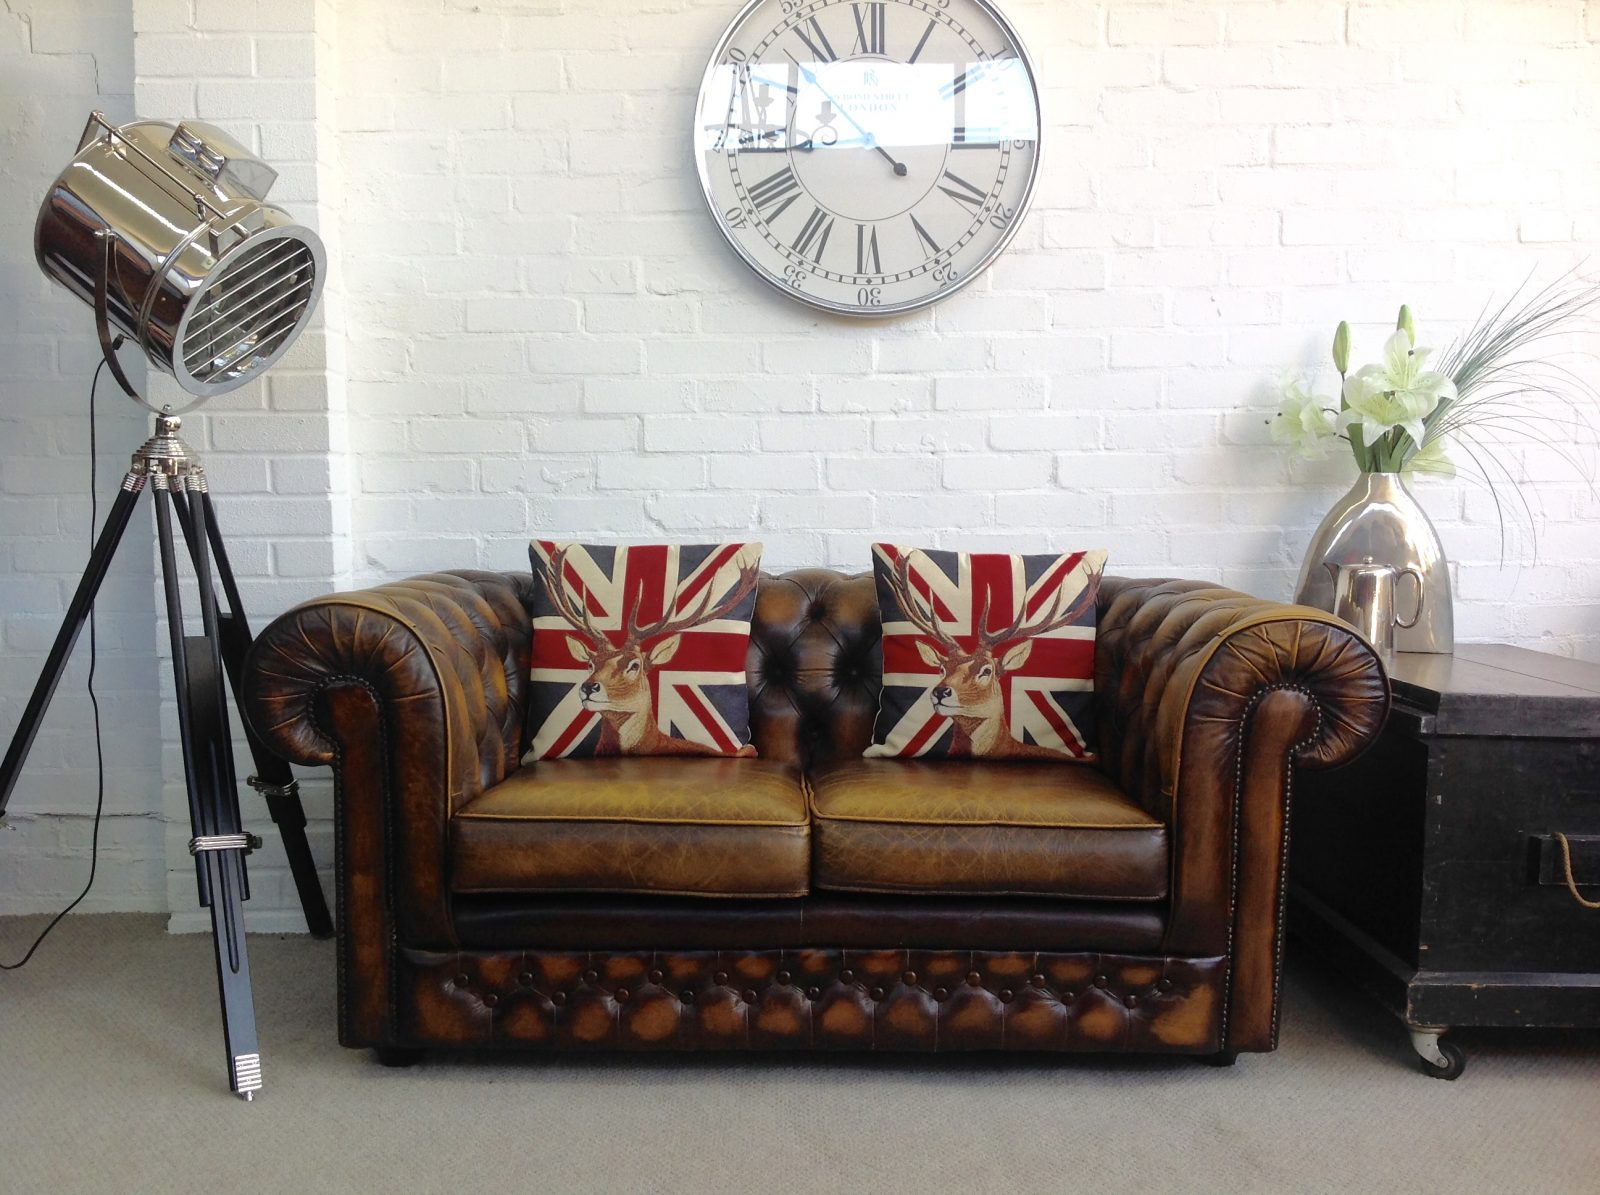 Golden Brown Thomas Lloyd Chesterfield Sofa.